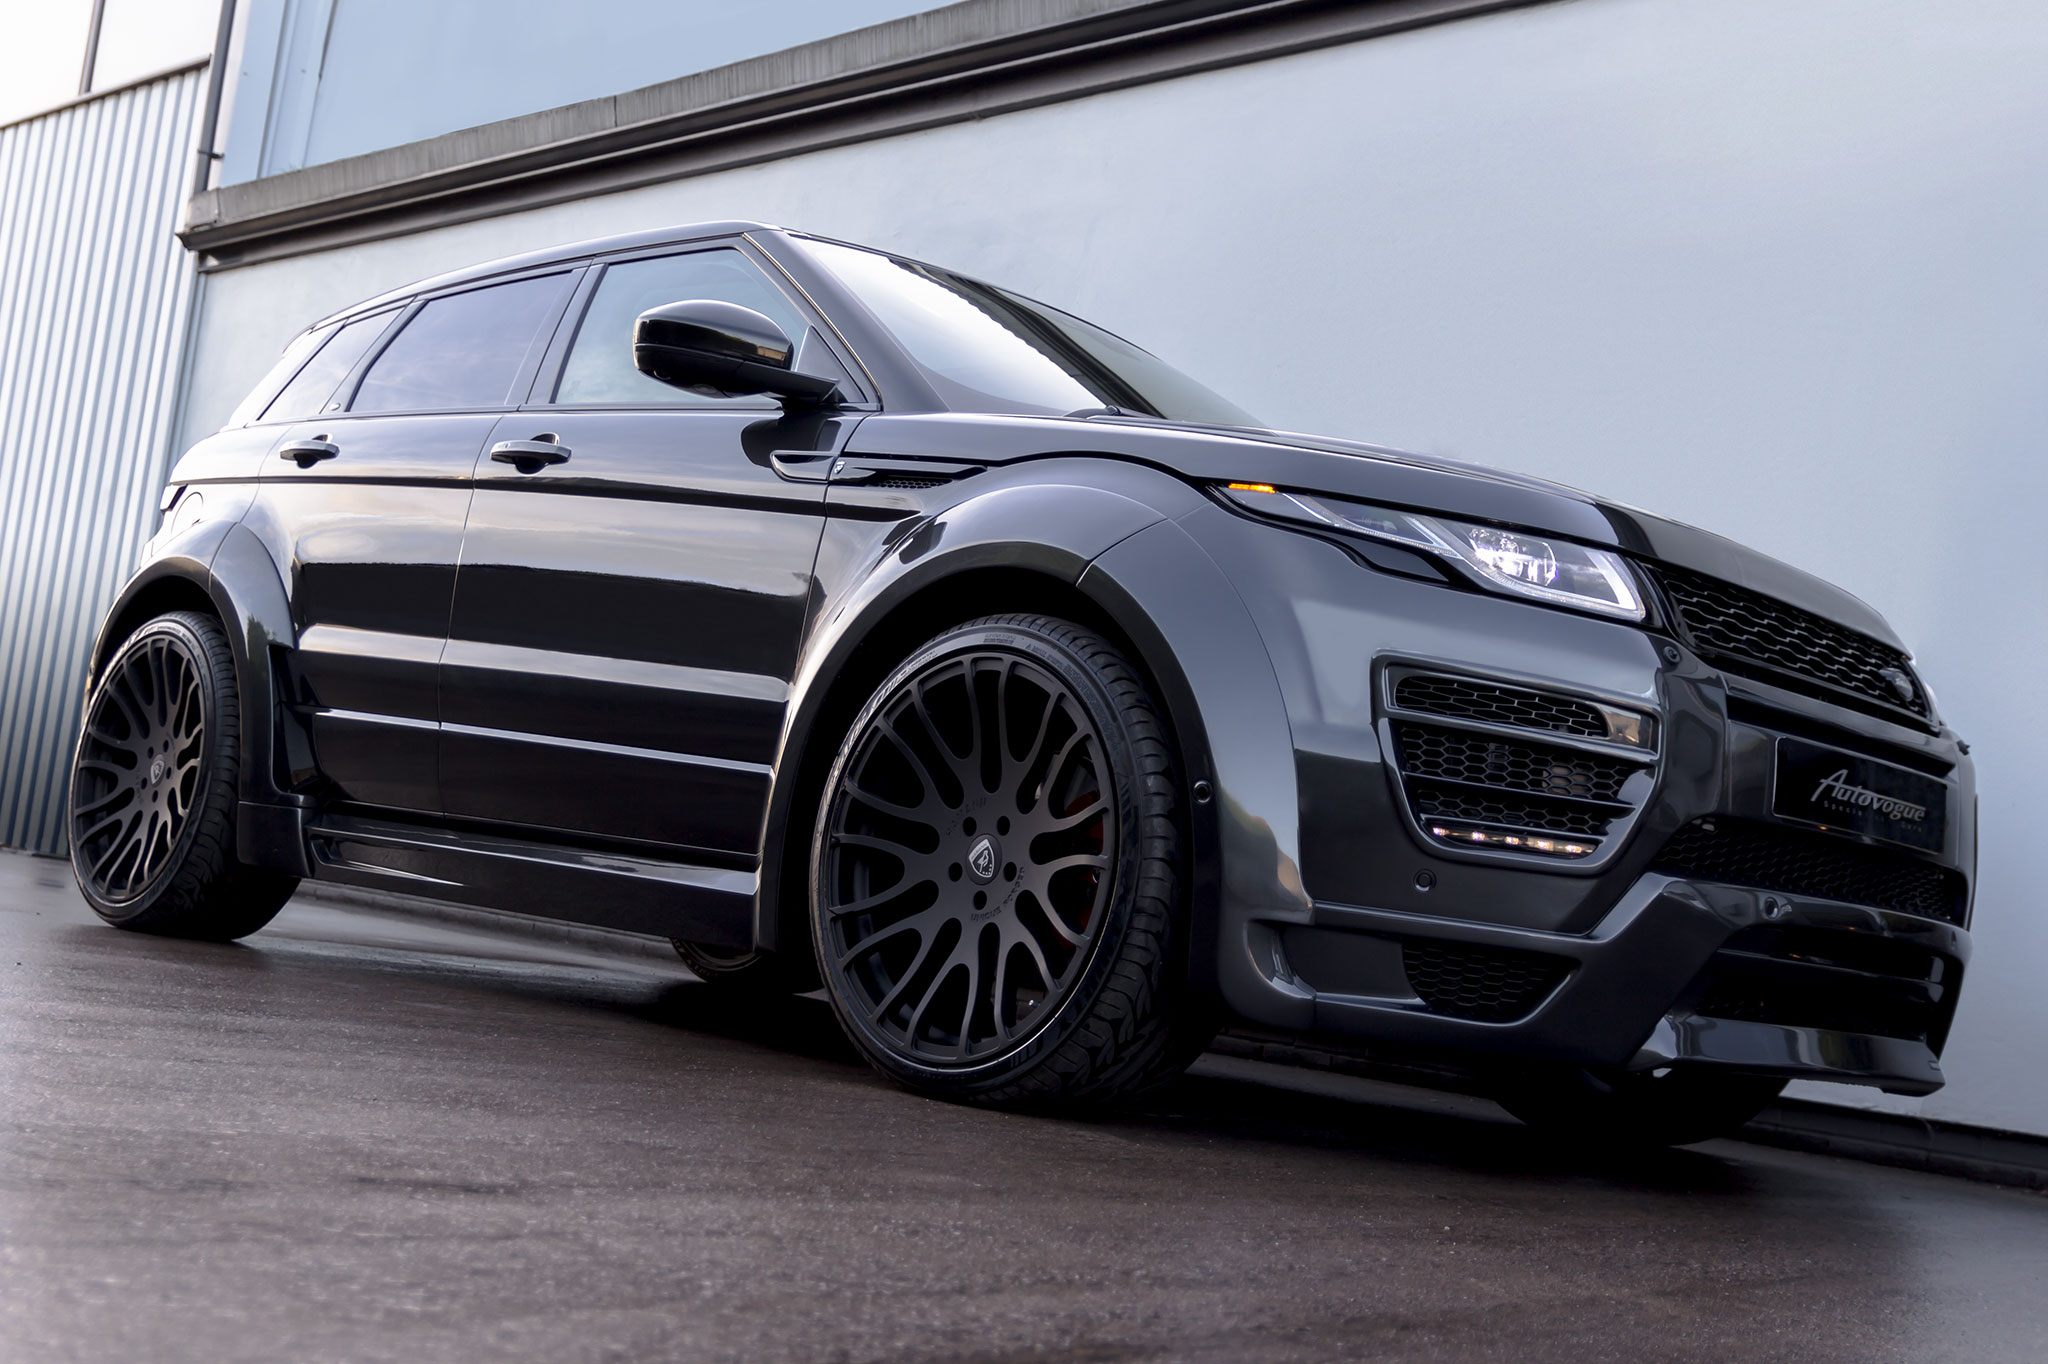 Range Rover Evoque >> Hamann Range Rover Evoque 5 Door Widebody